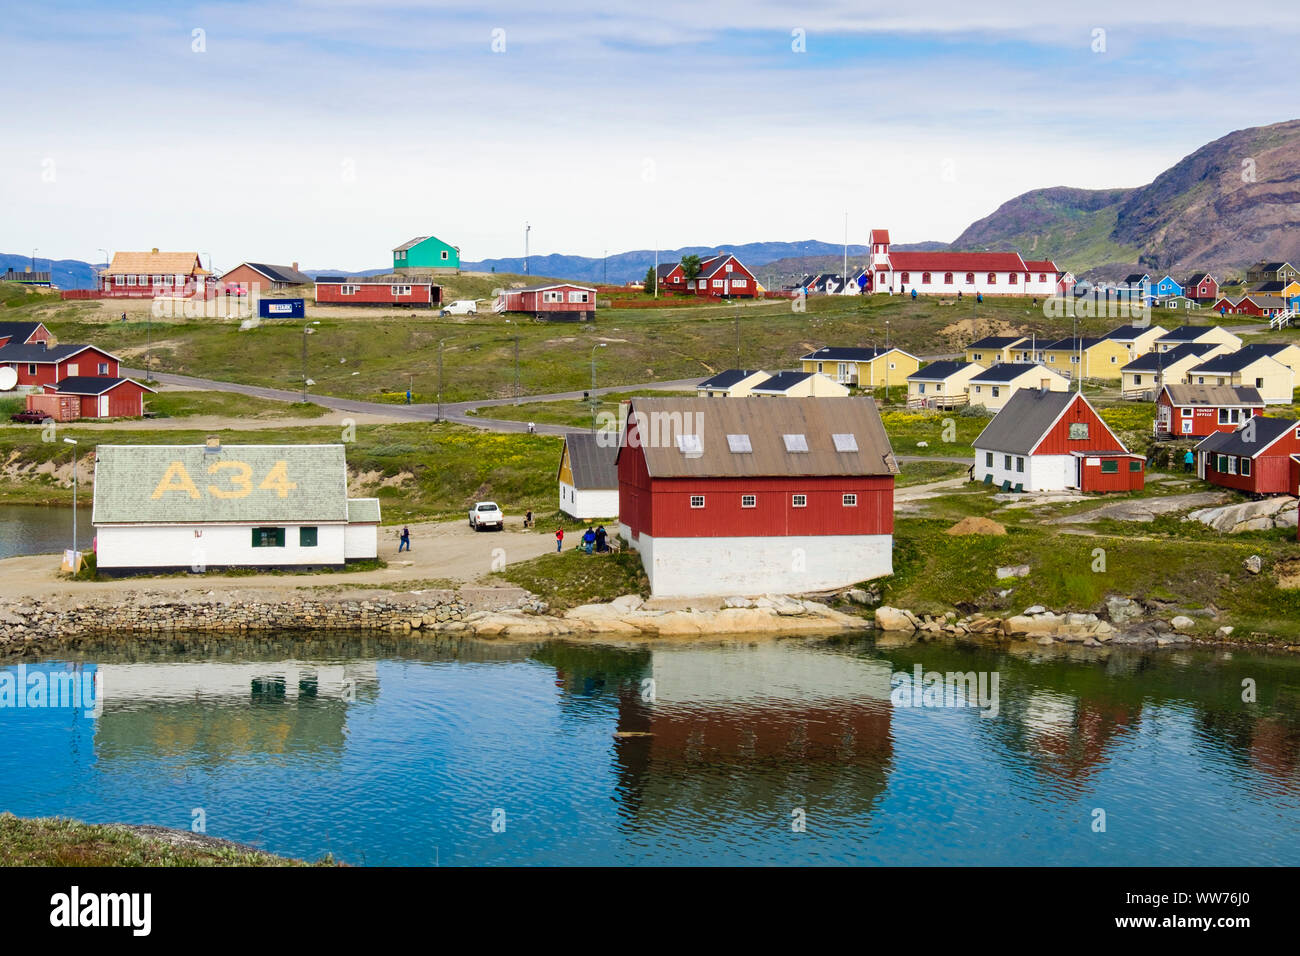 View across the bay to the museum buildings in Narsaq, Kujalleq, South Greenland Stock Photo